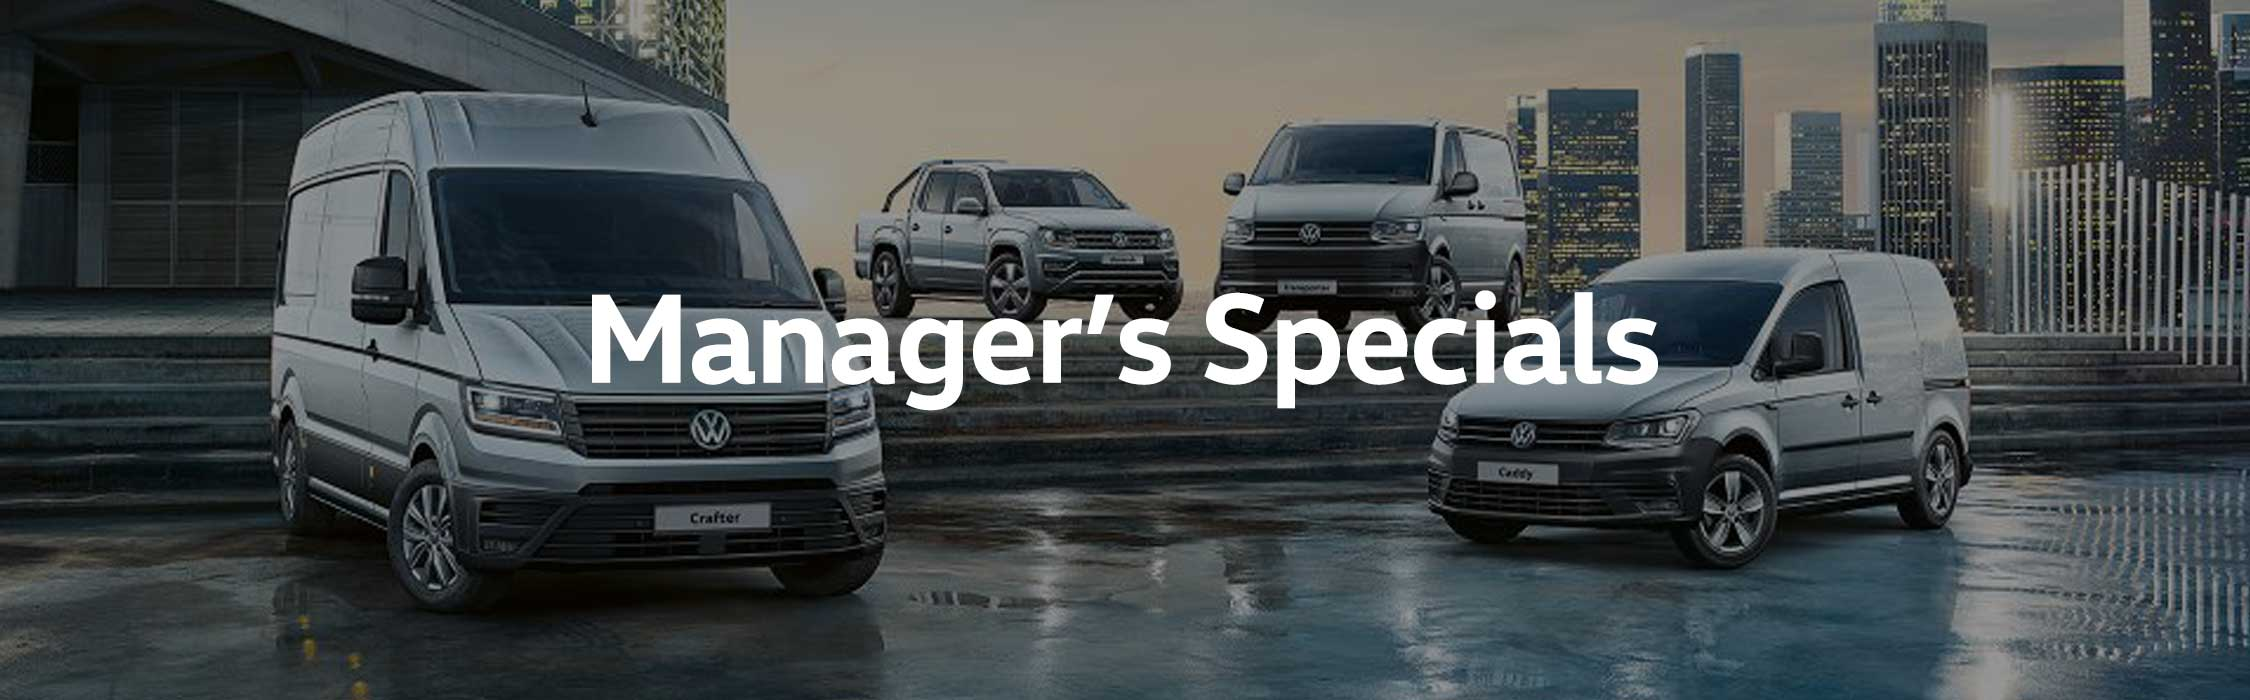 Volkwagen Manager's Specials Commercial Vans